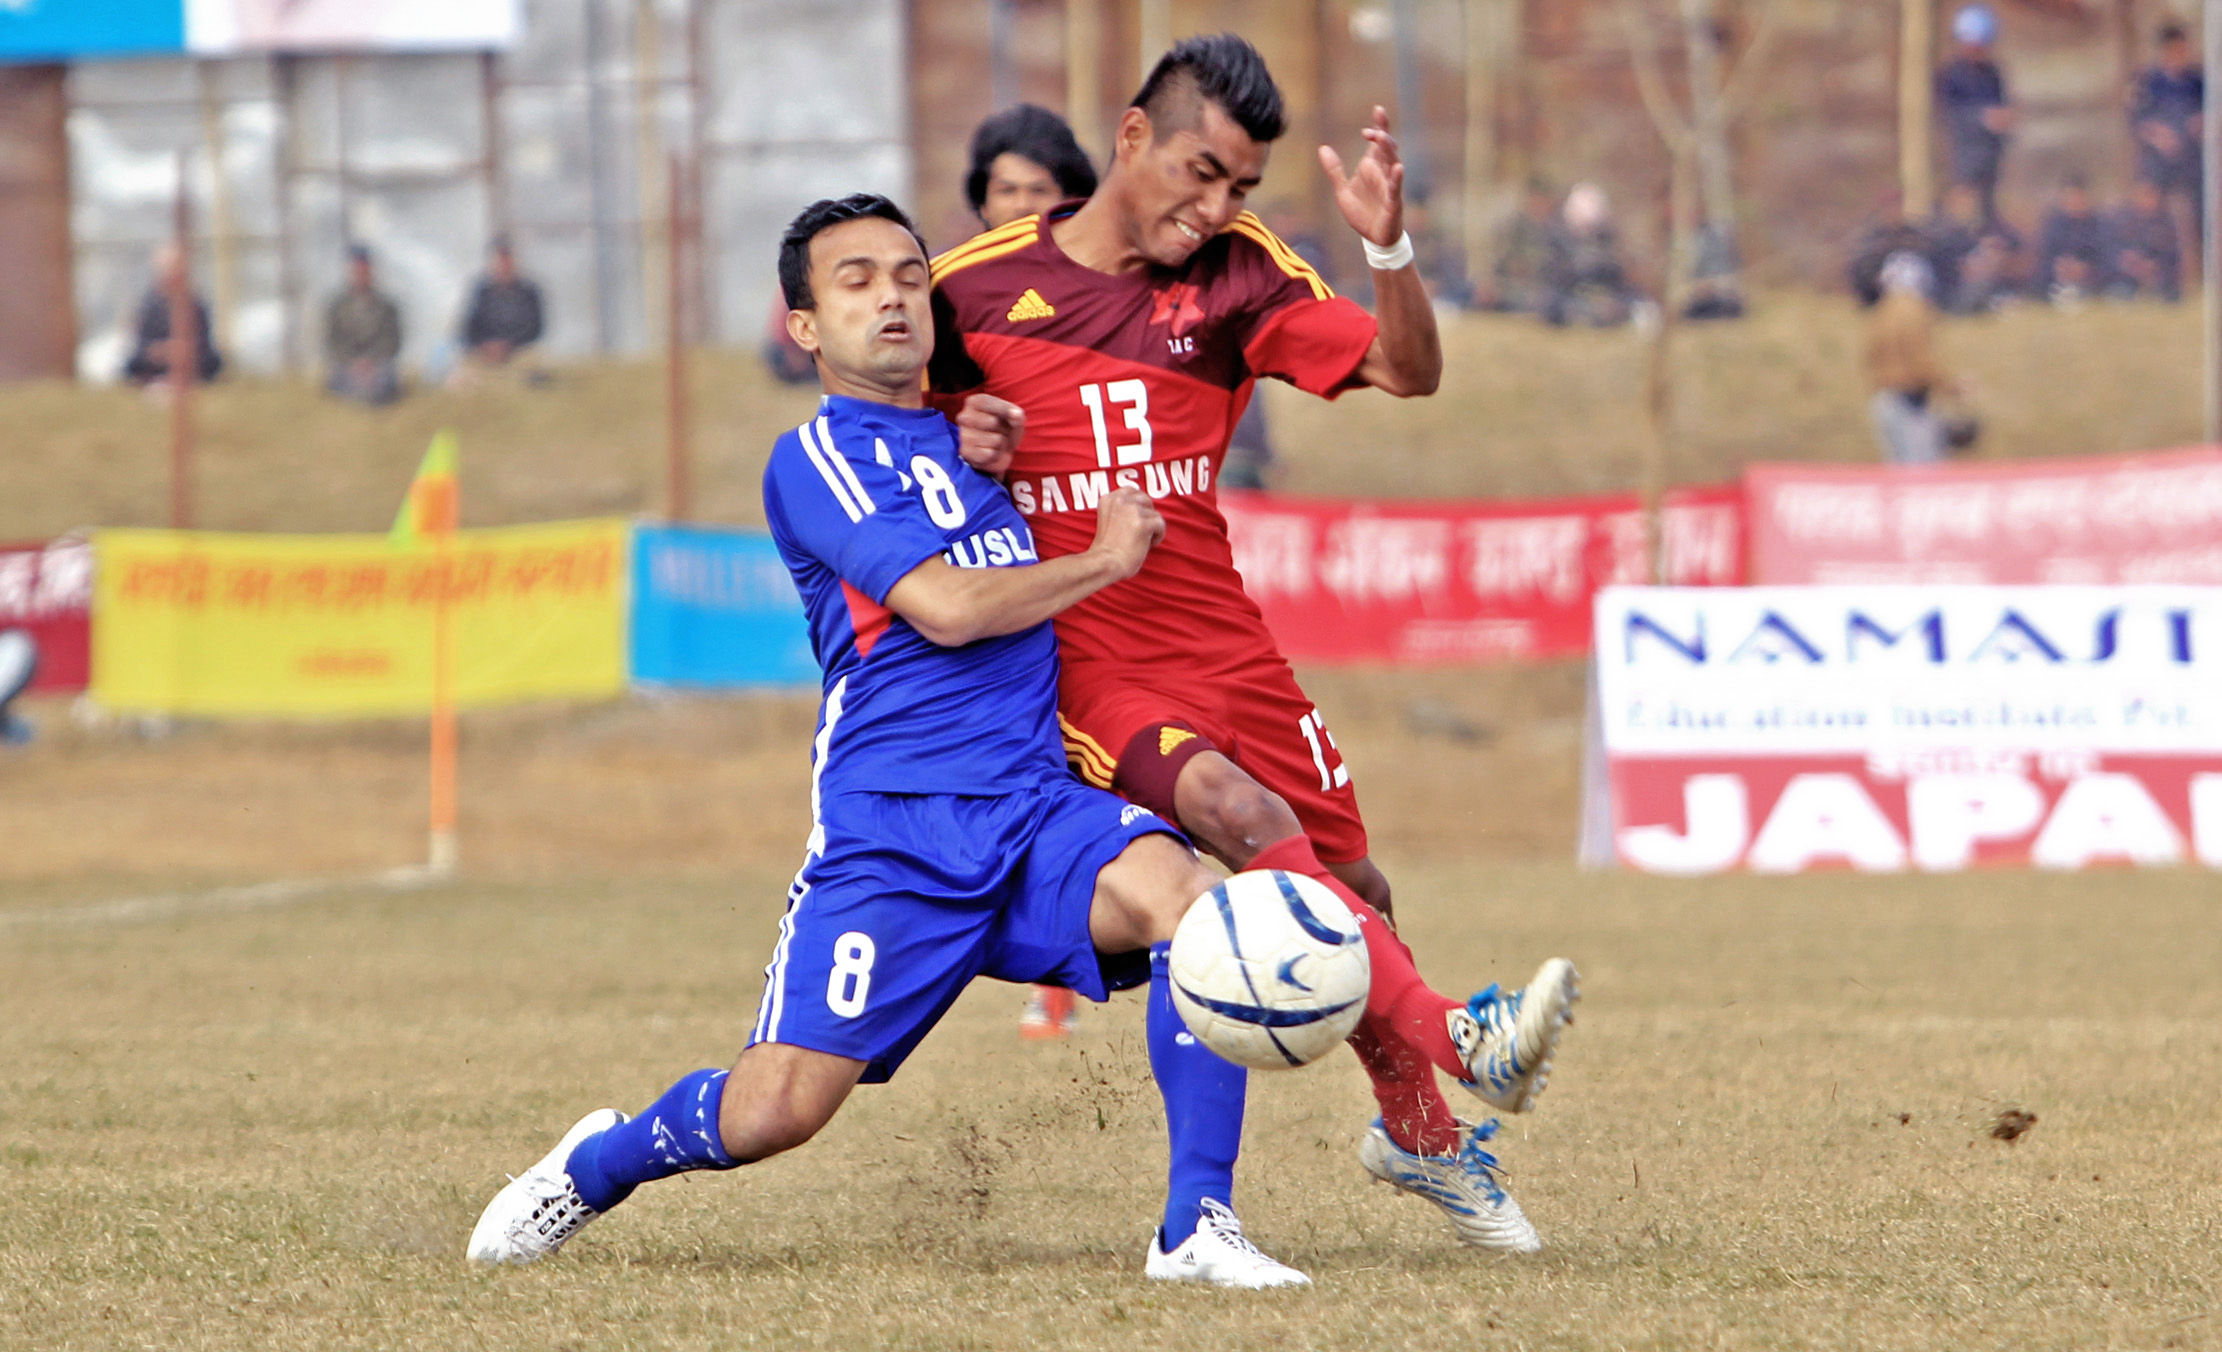 A Three Star Club player (Blue) vies for the ball with a Tribhuvan Army Club player during the 14th Aaha-Rara Gold Cup in Pokhara, on Monday, January 25, 2016. Photo: THT